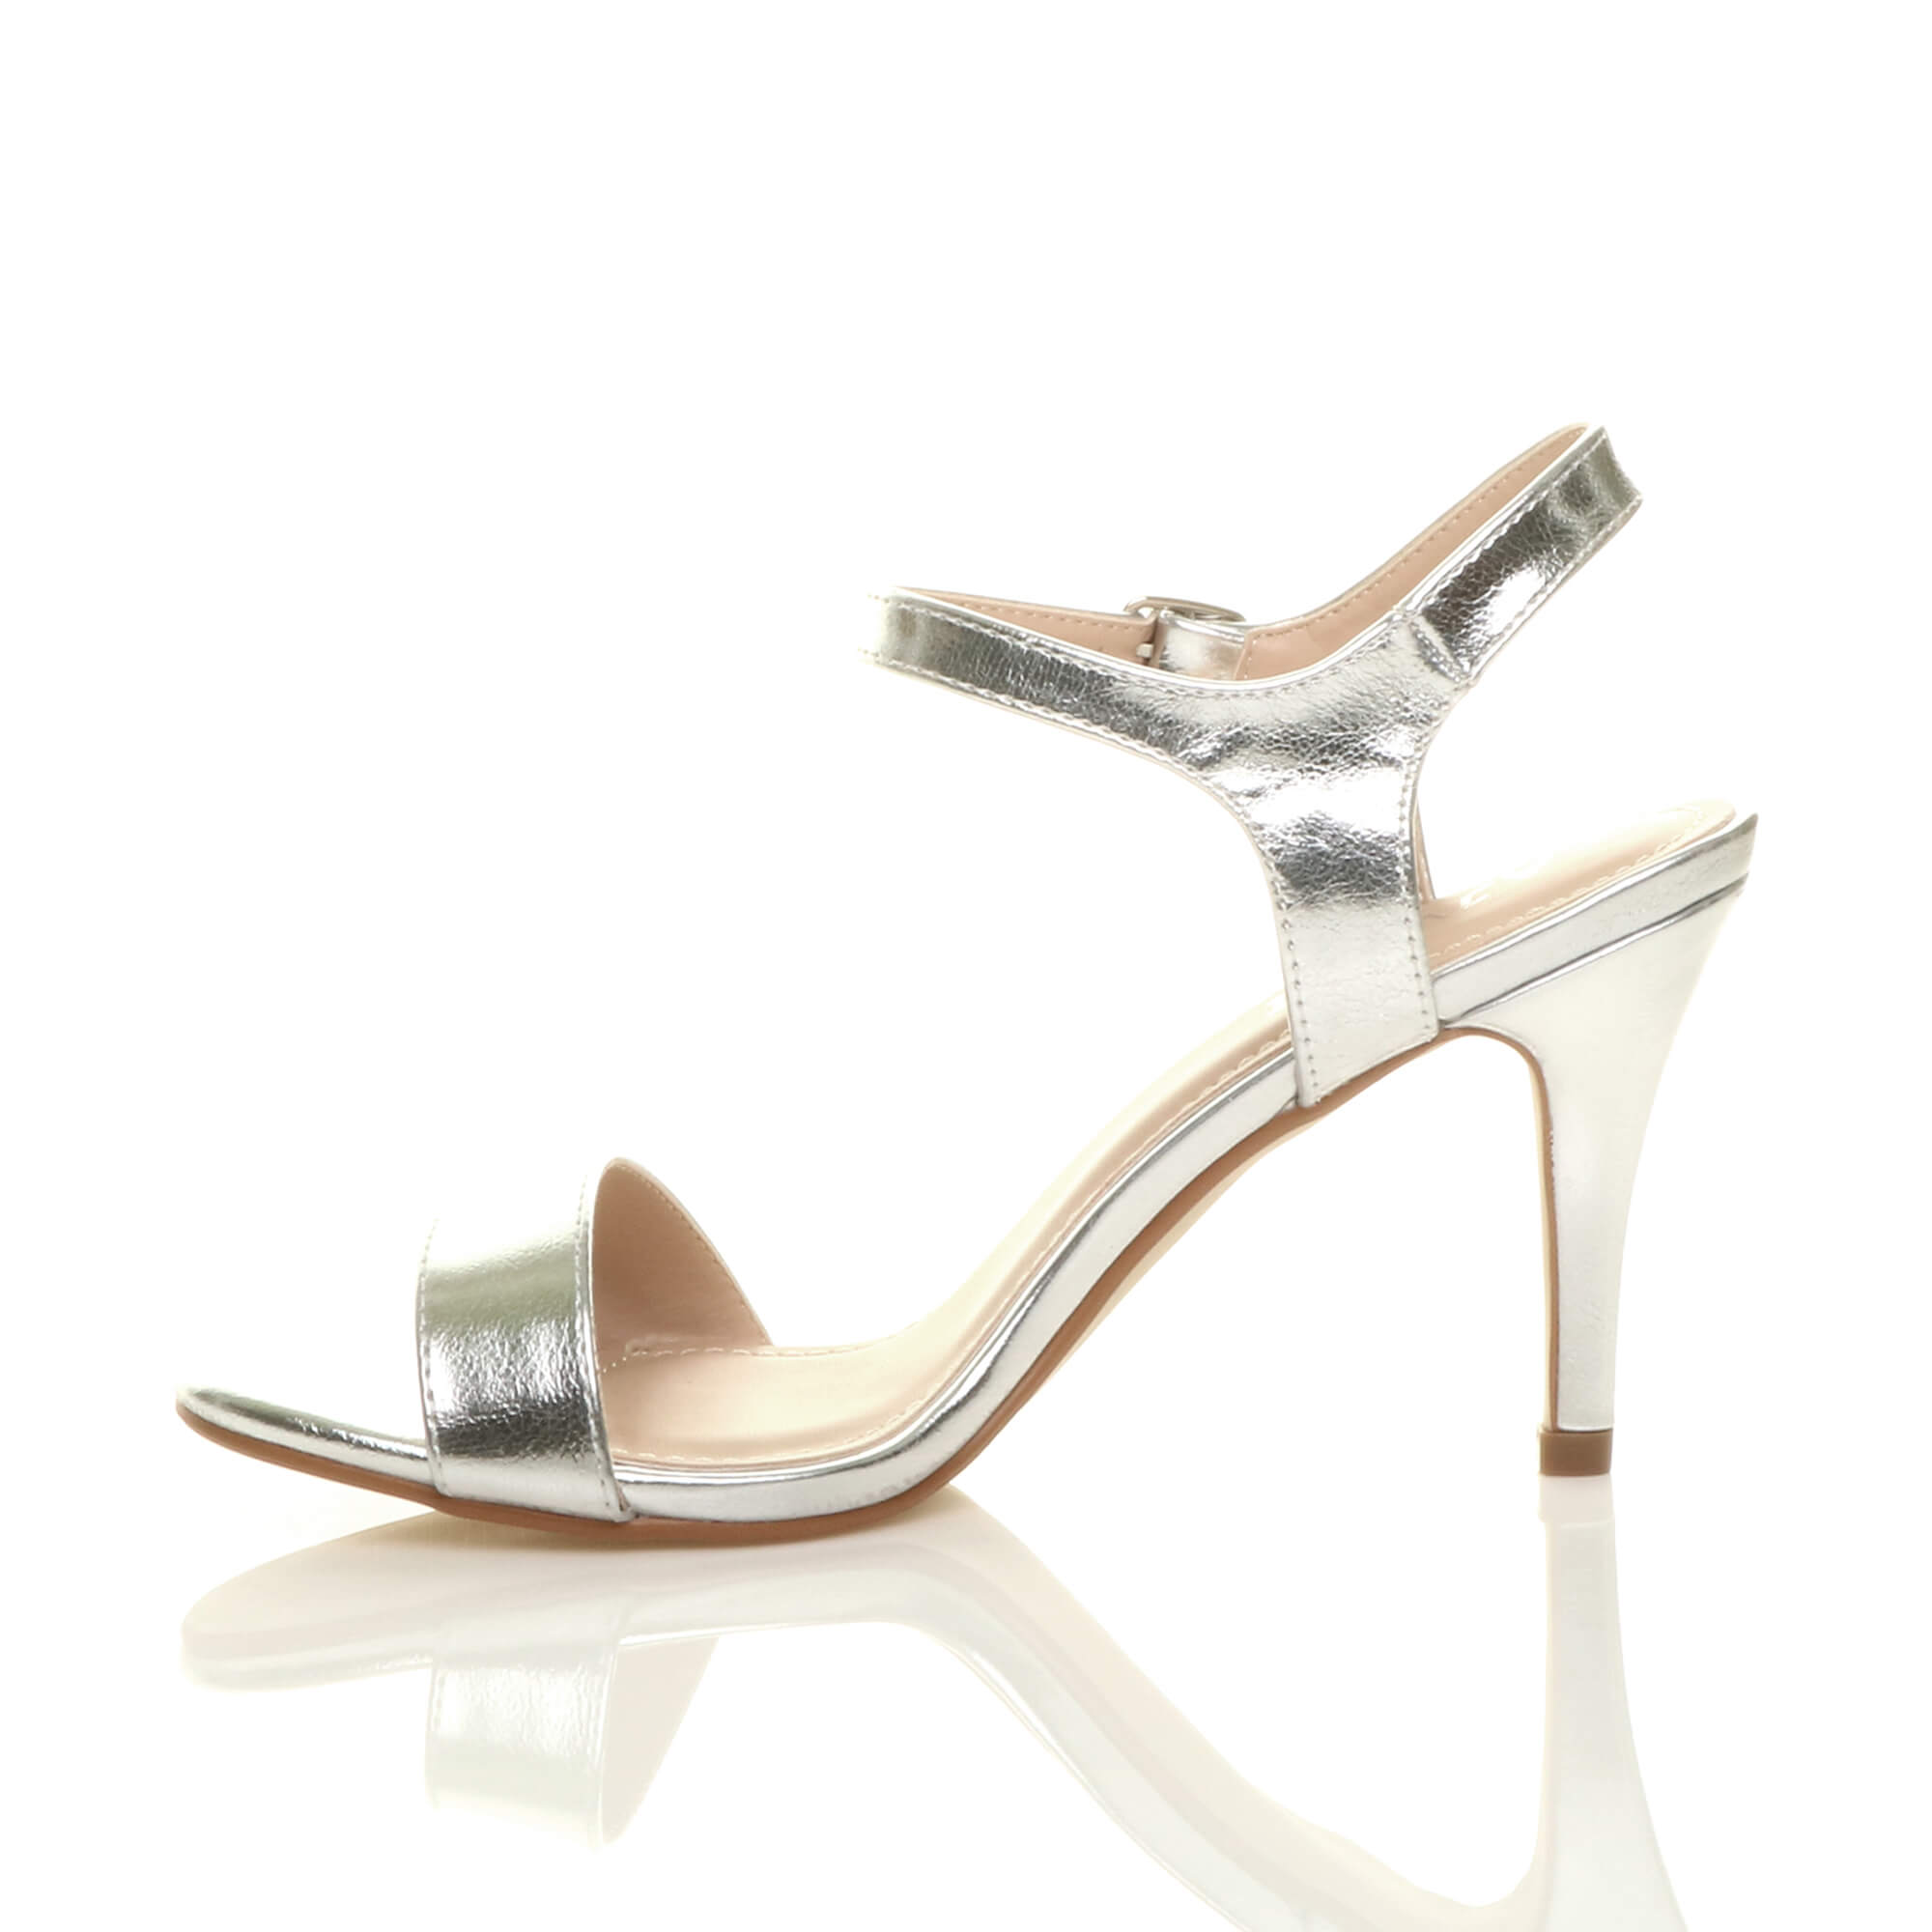 WOMENS-LADIES-HIGH-HEEL-BUCKLE-STRAPPY-BASIC-BARELY-THERE-SANDALS-SHOES-SIZE thumbnail 130